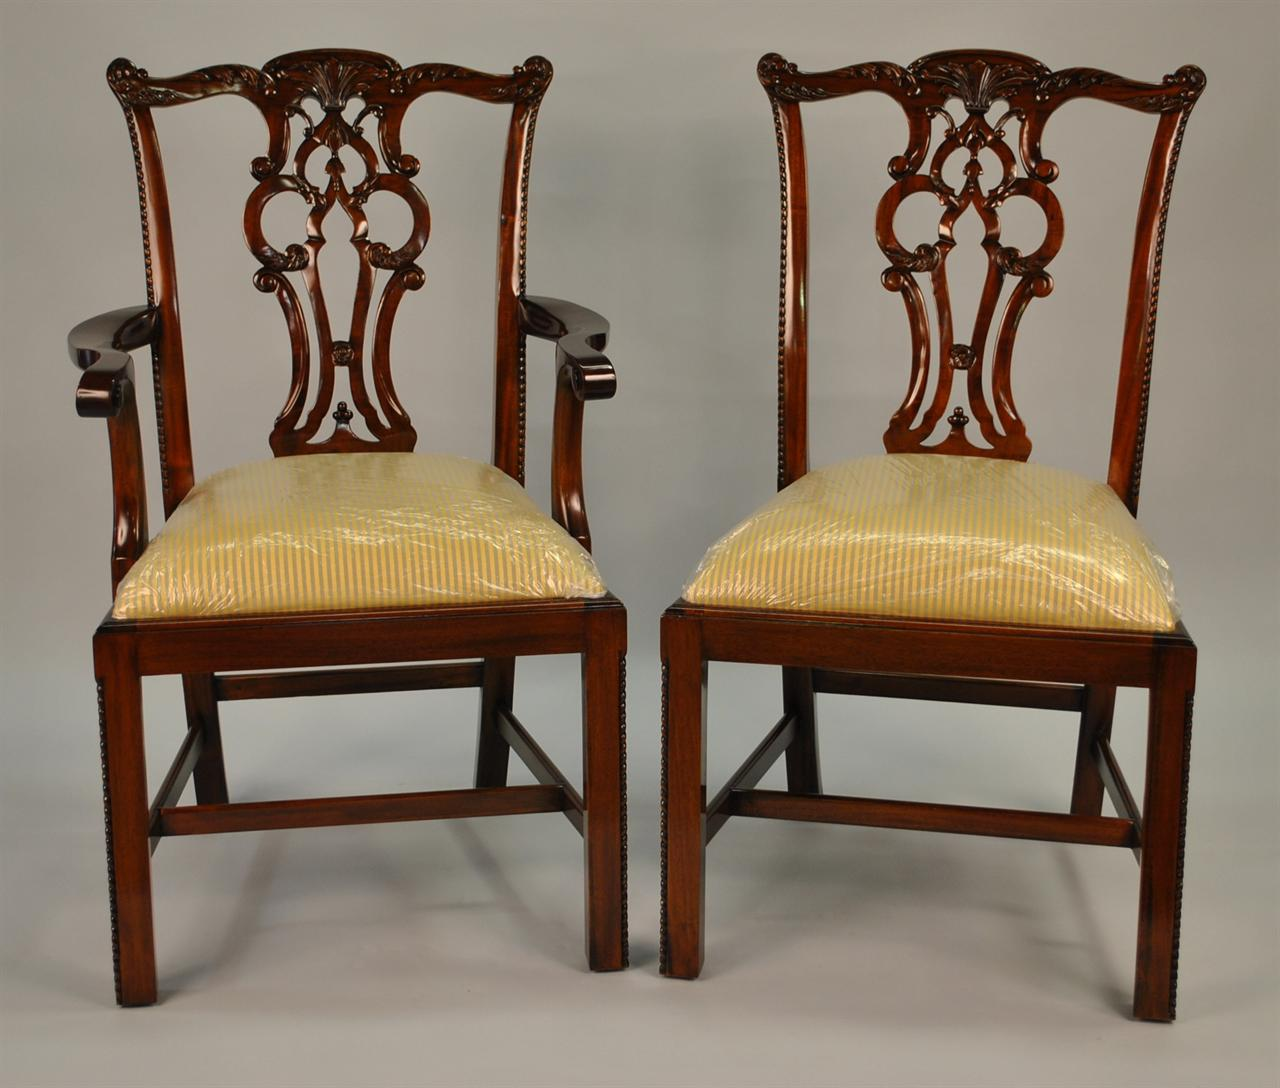 Chippendale Mahogany Dining Room Chairs: Chippendale Solid Mahogany Straight Leg Dining Room Chairs